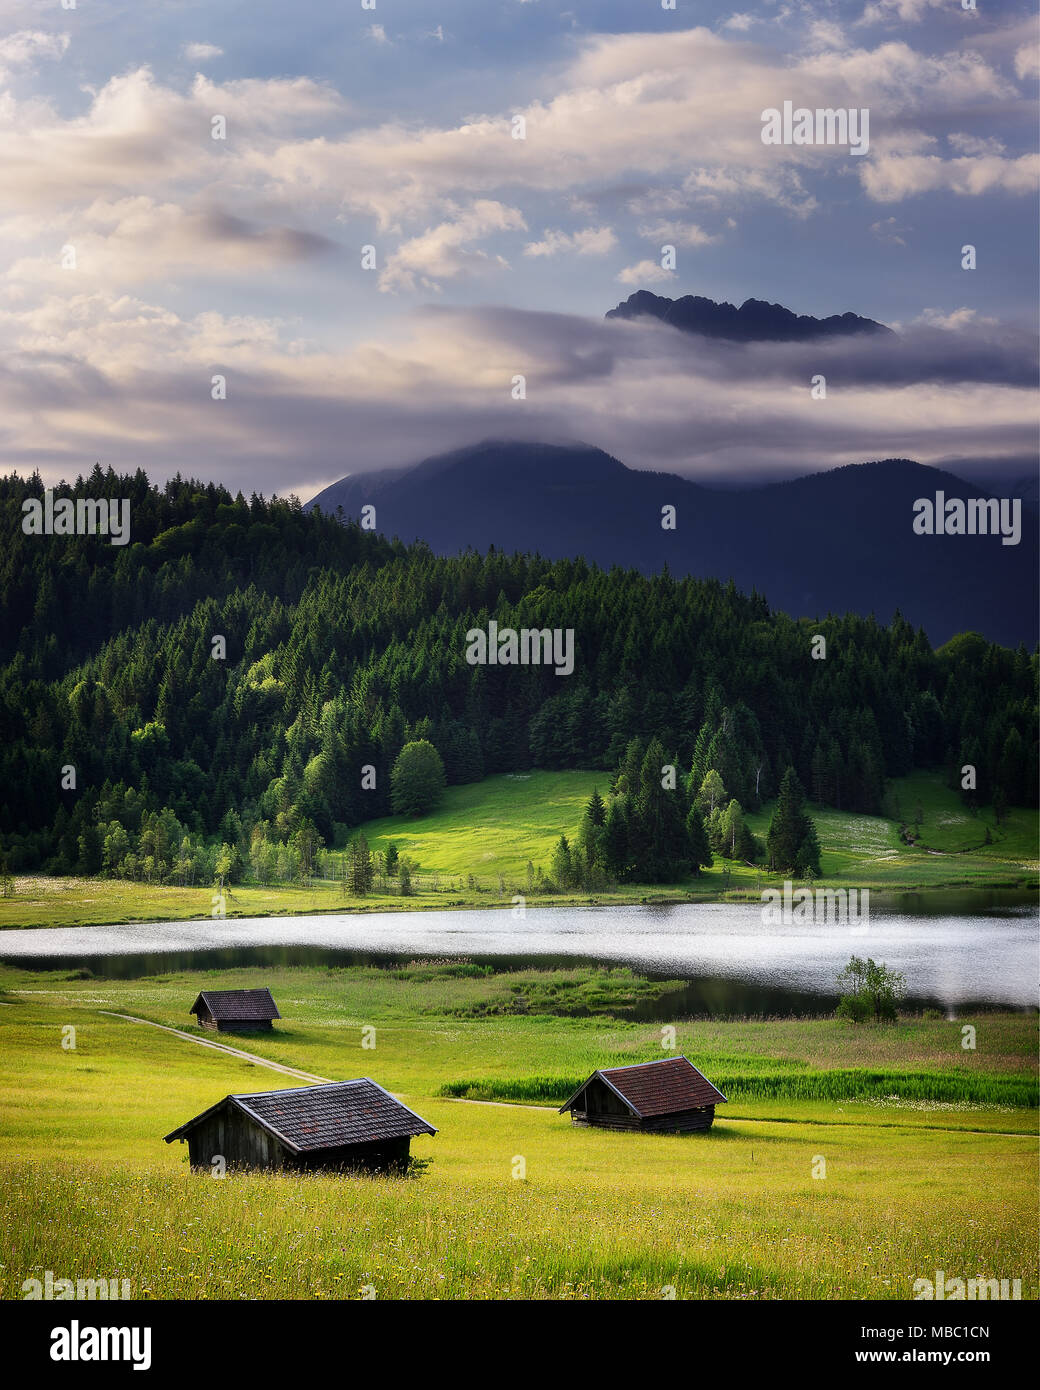 Geroldsee view during summer day with foggy sunrise. Rainy cloudy sky and huts in mountains near beautiful lake. Bavarian Alps, Bavaria, Germany. - Stock Image